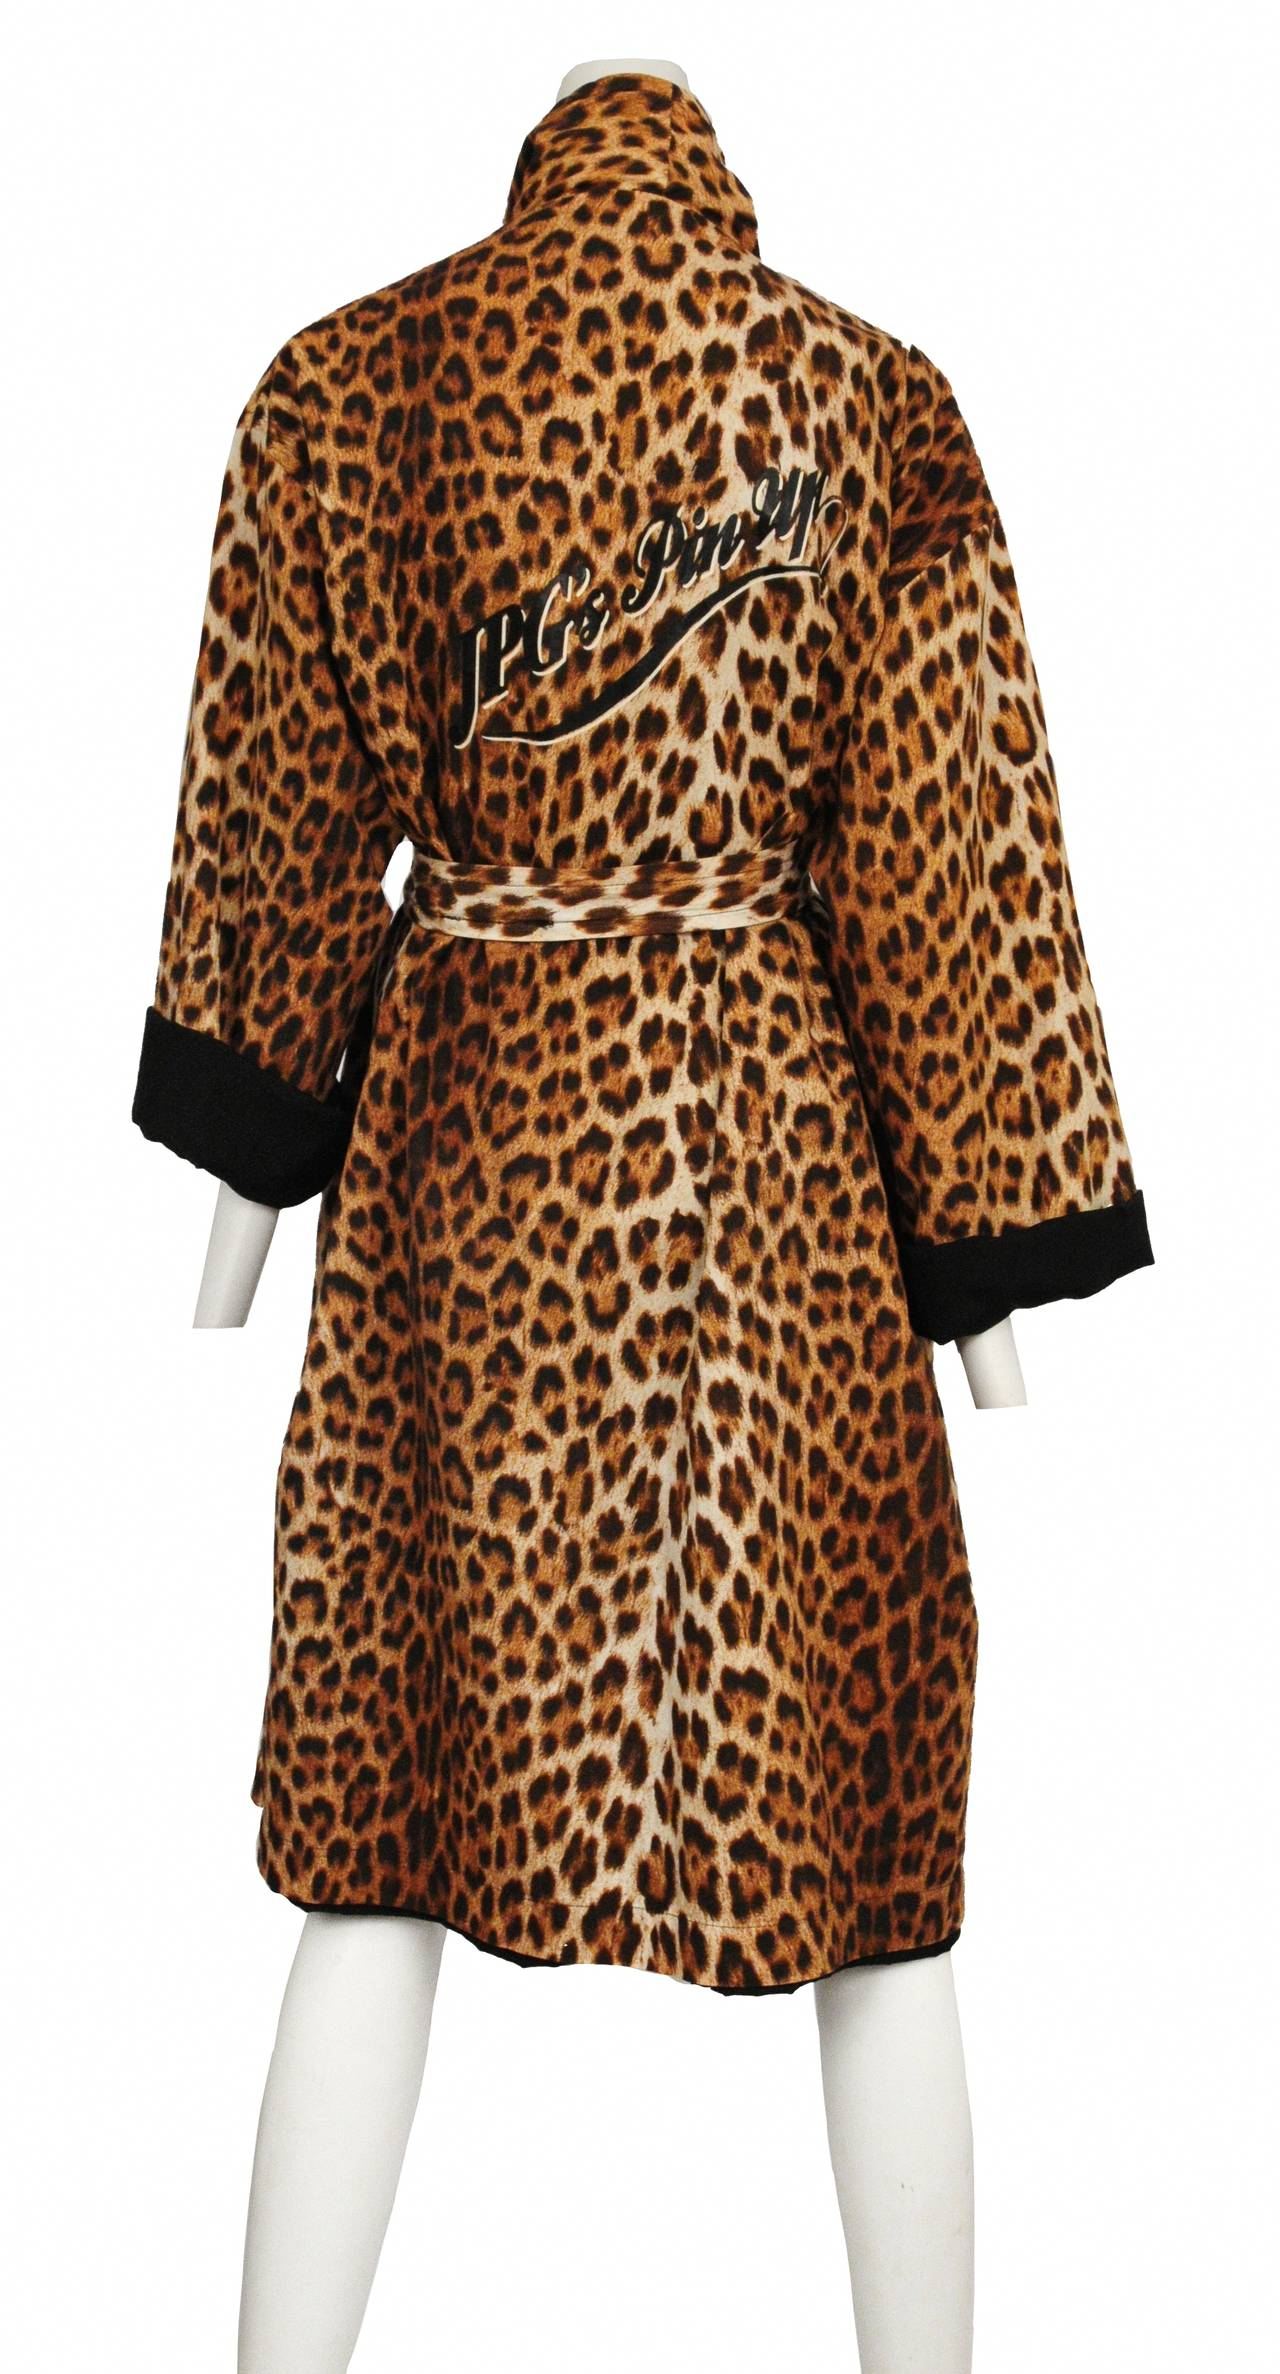 jean paul gaultier silk leopard robe at 1stdibs. Black Bedroom Furniture Sets. Home Design Ideas